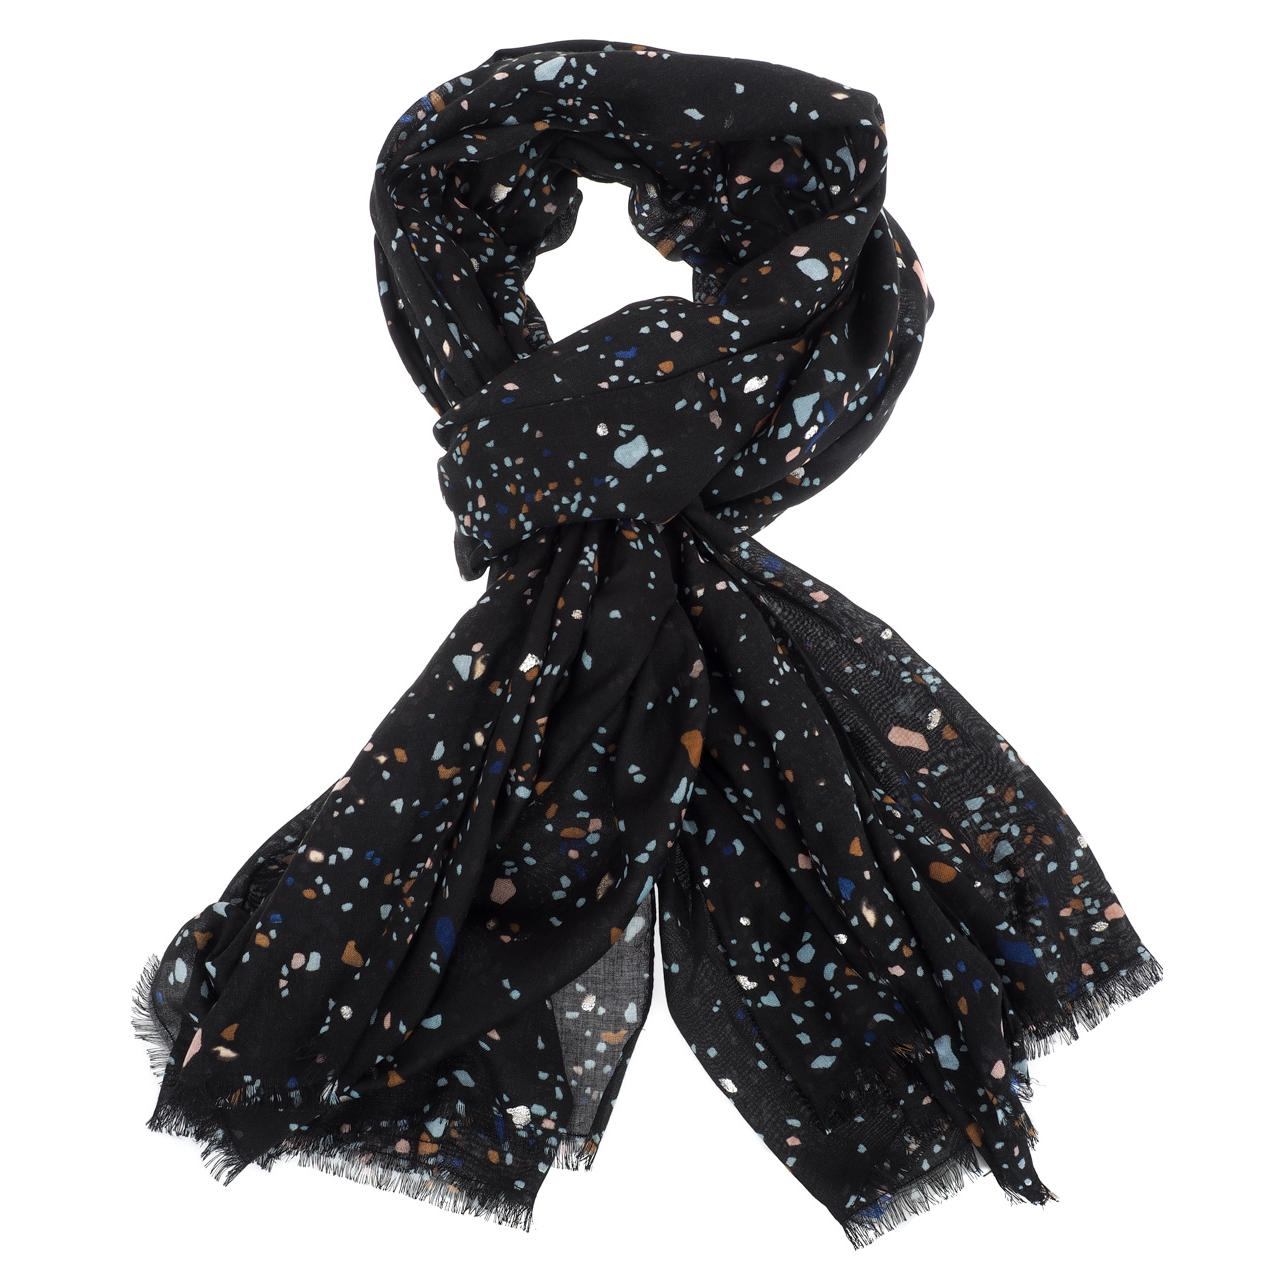 Foulard-Pieces-Rocky-black-long-scarf-Noir-51786-Neuf